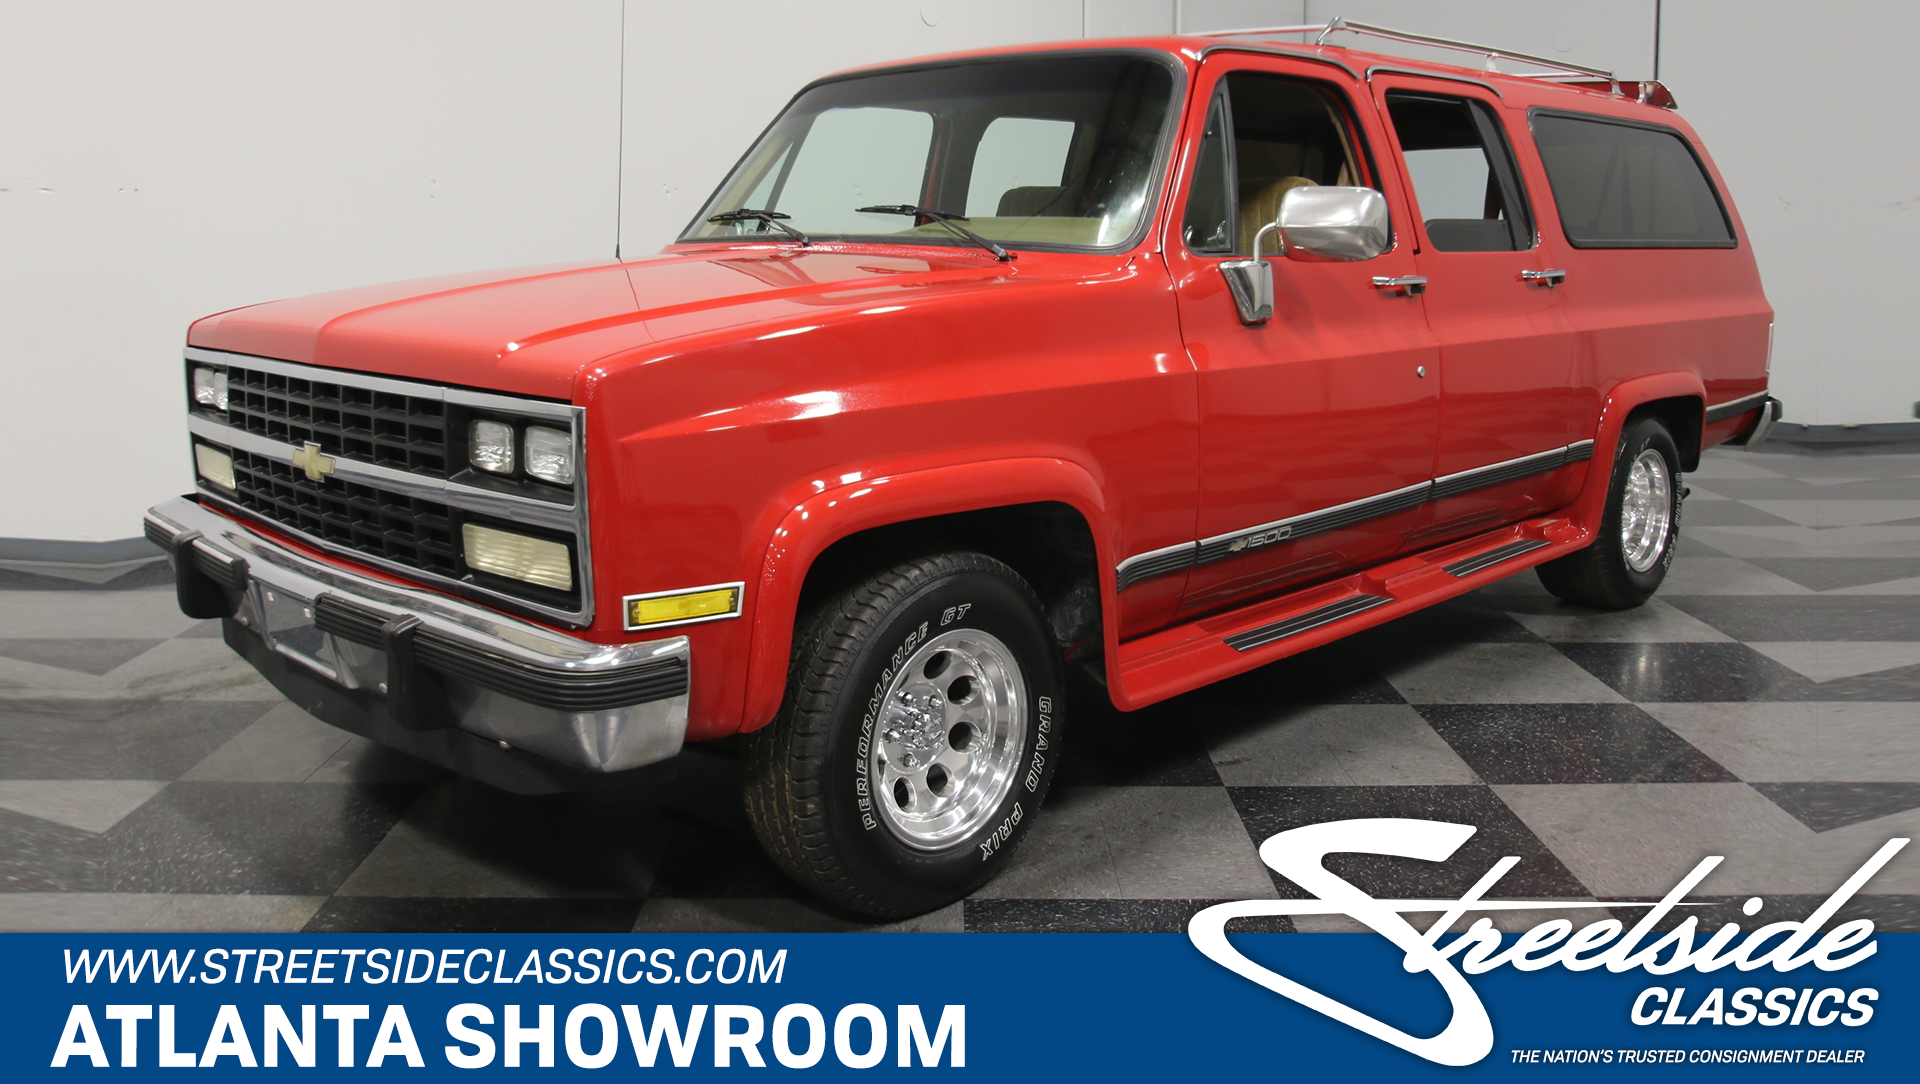 1985 Chevrolet Suburban Streetside Classics The Nations Trusted 1930 Chevy Sedan Spare Tire Mount Play Video